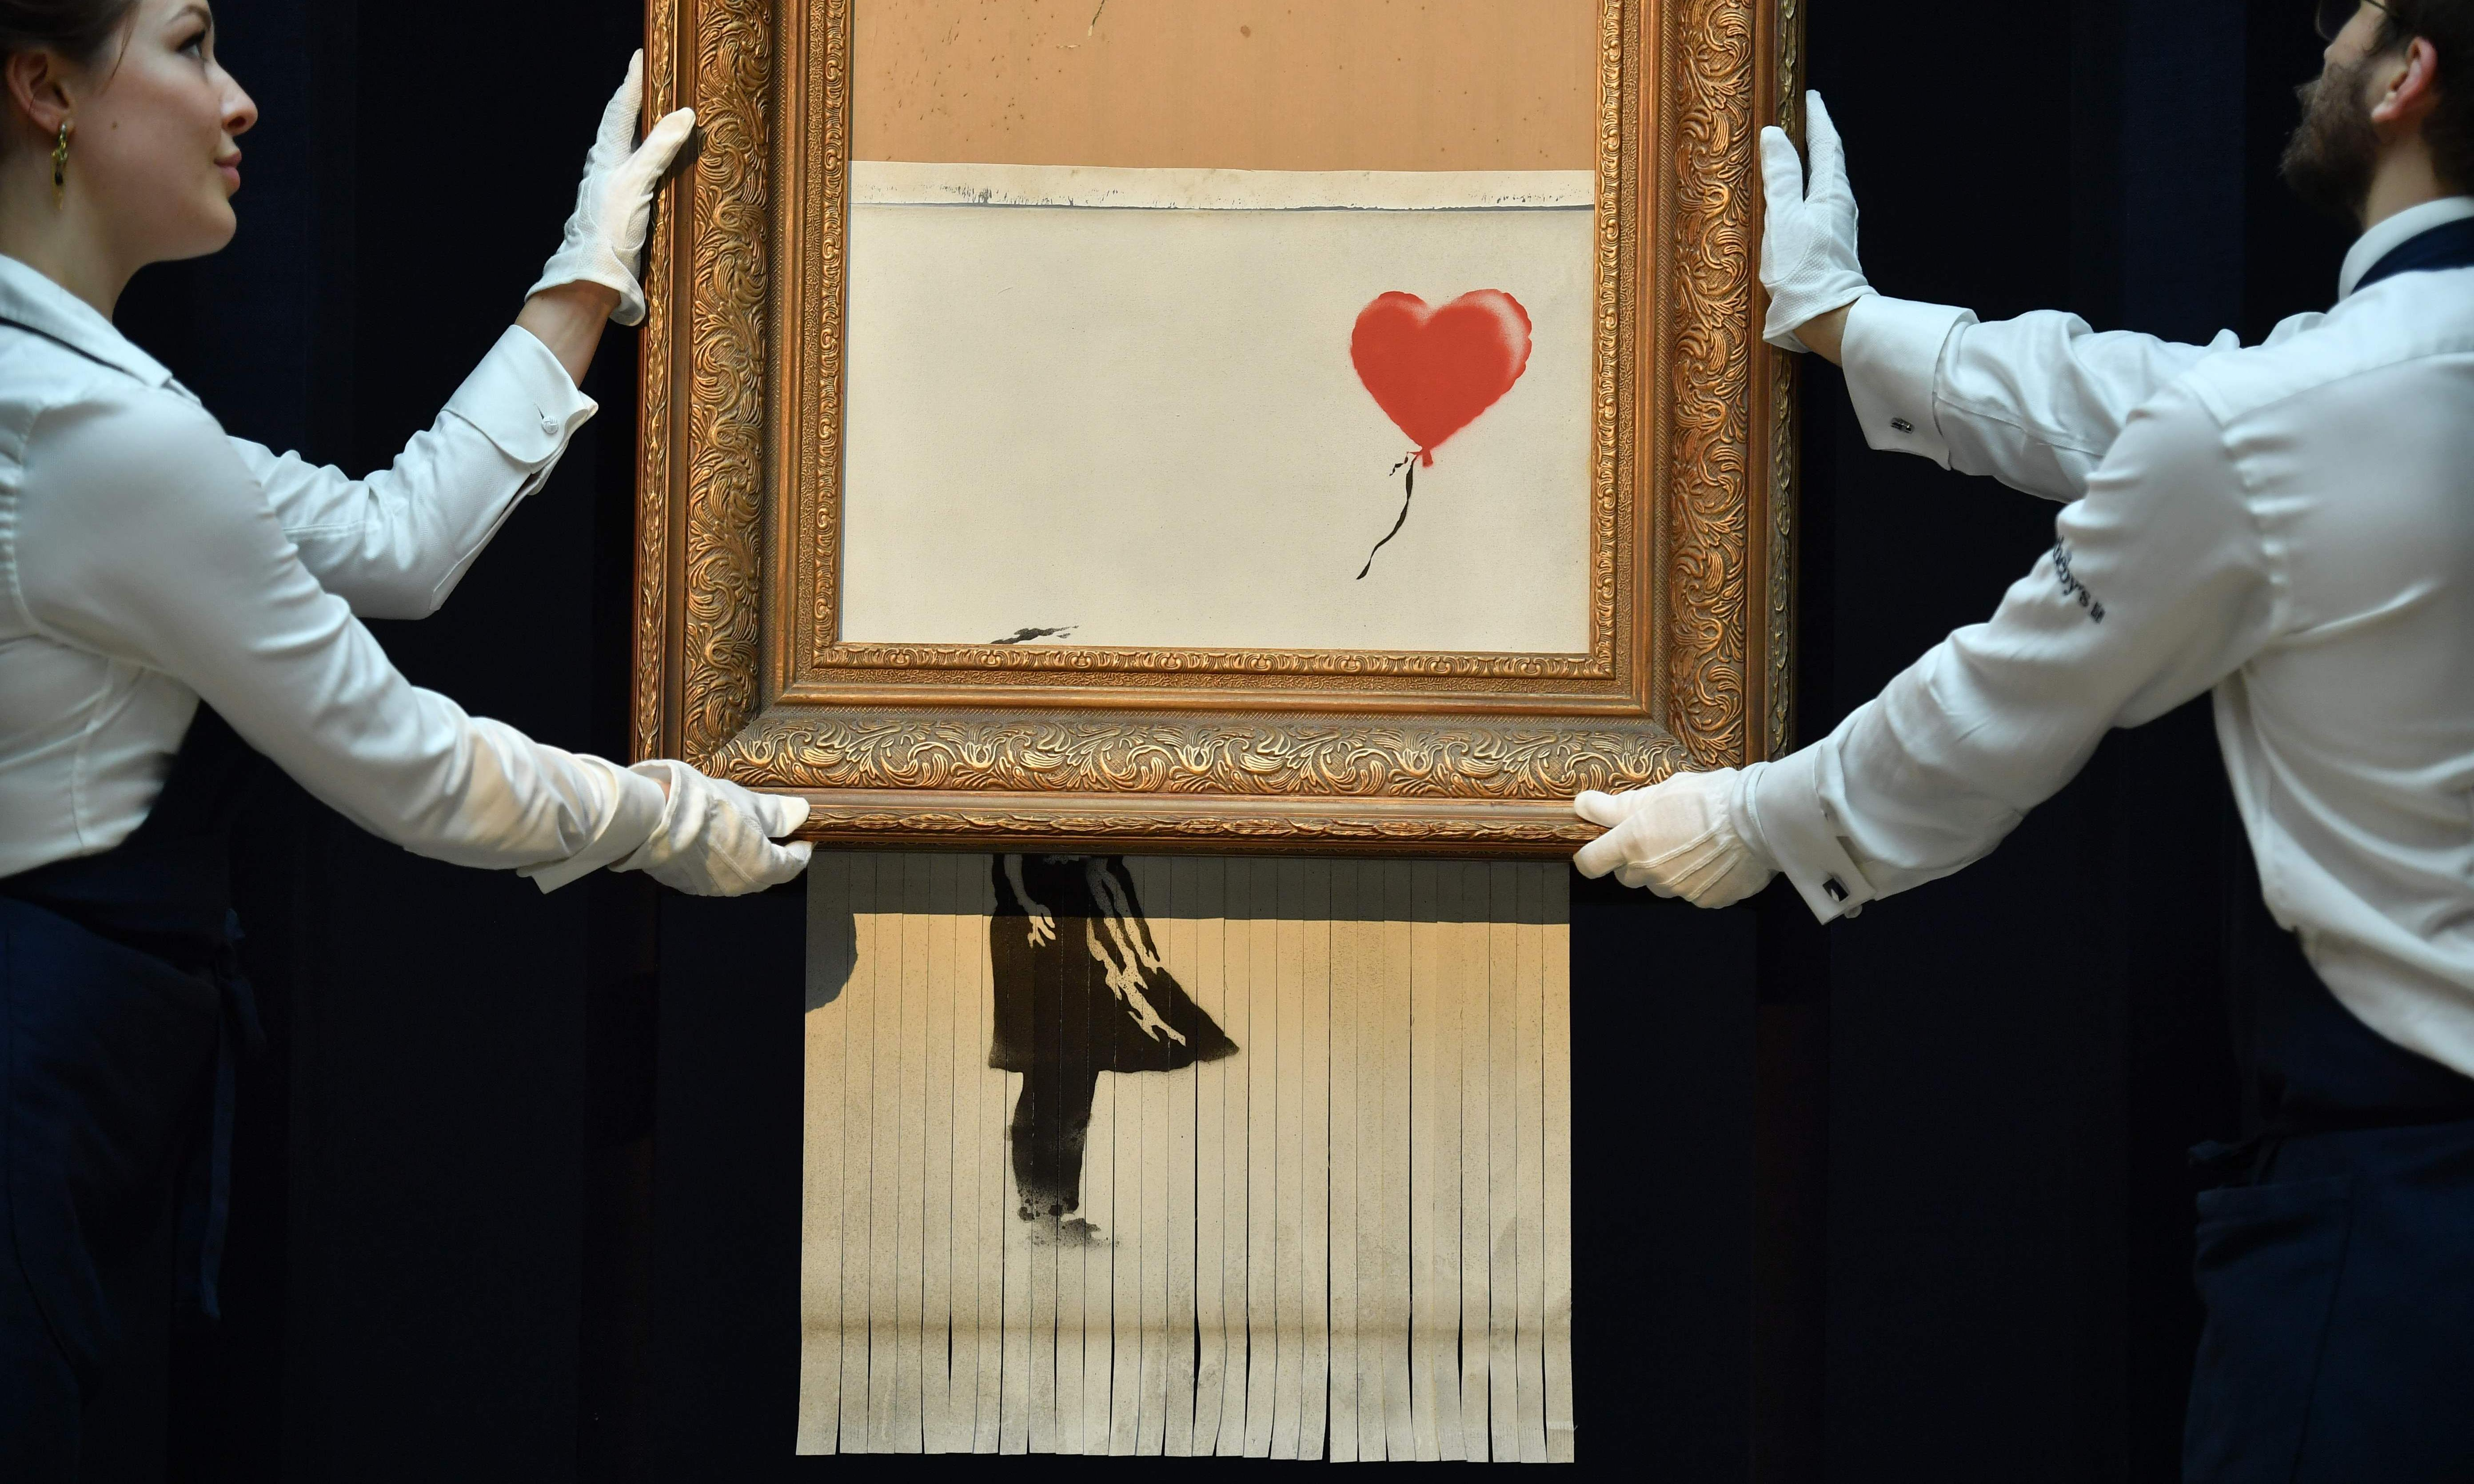 Shredded Banksy: was Sotheby's in on the act?